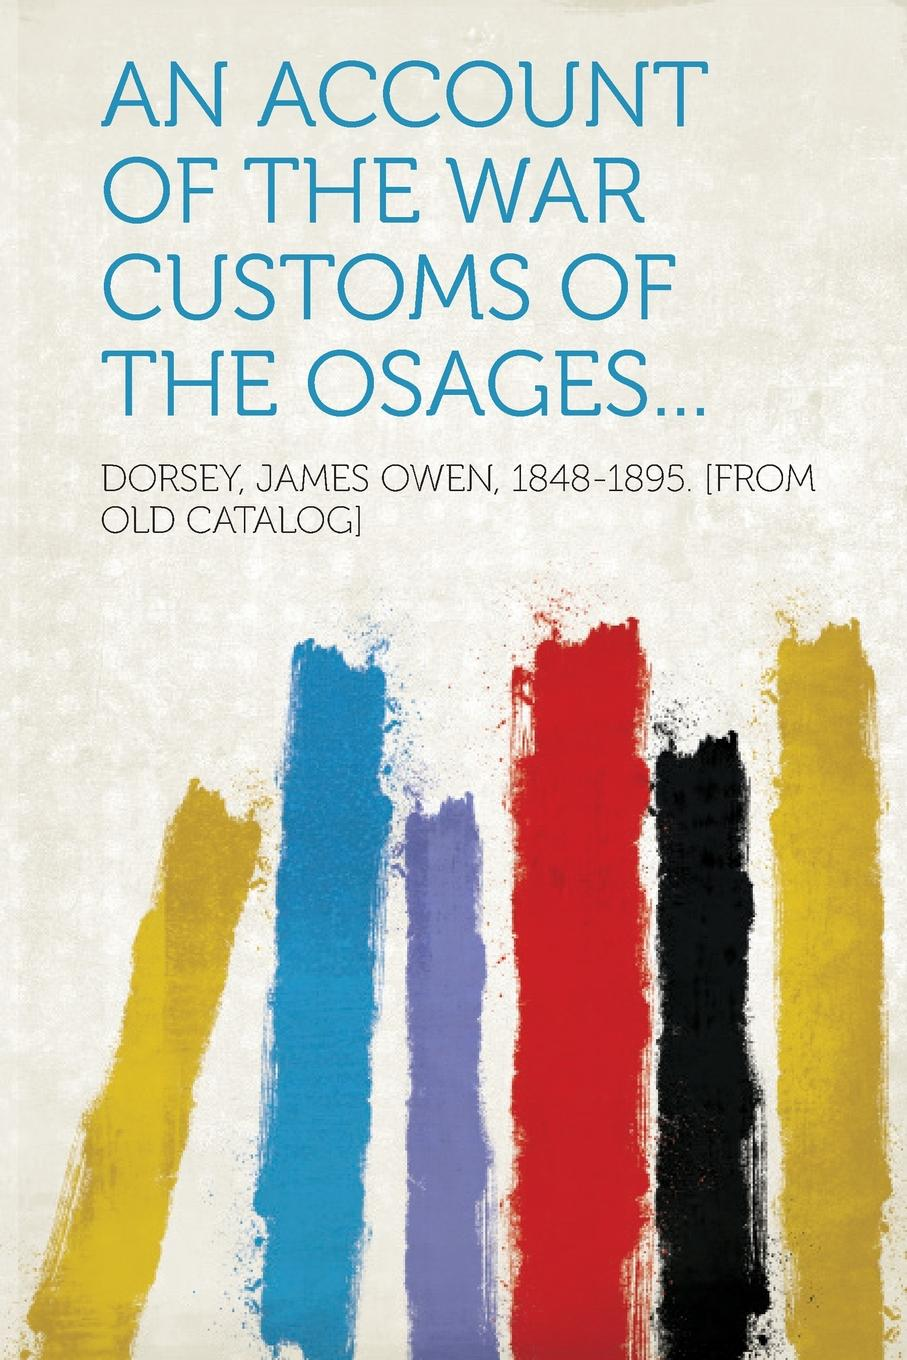 An Account of the War Customs of the Osages...